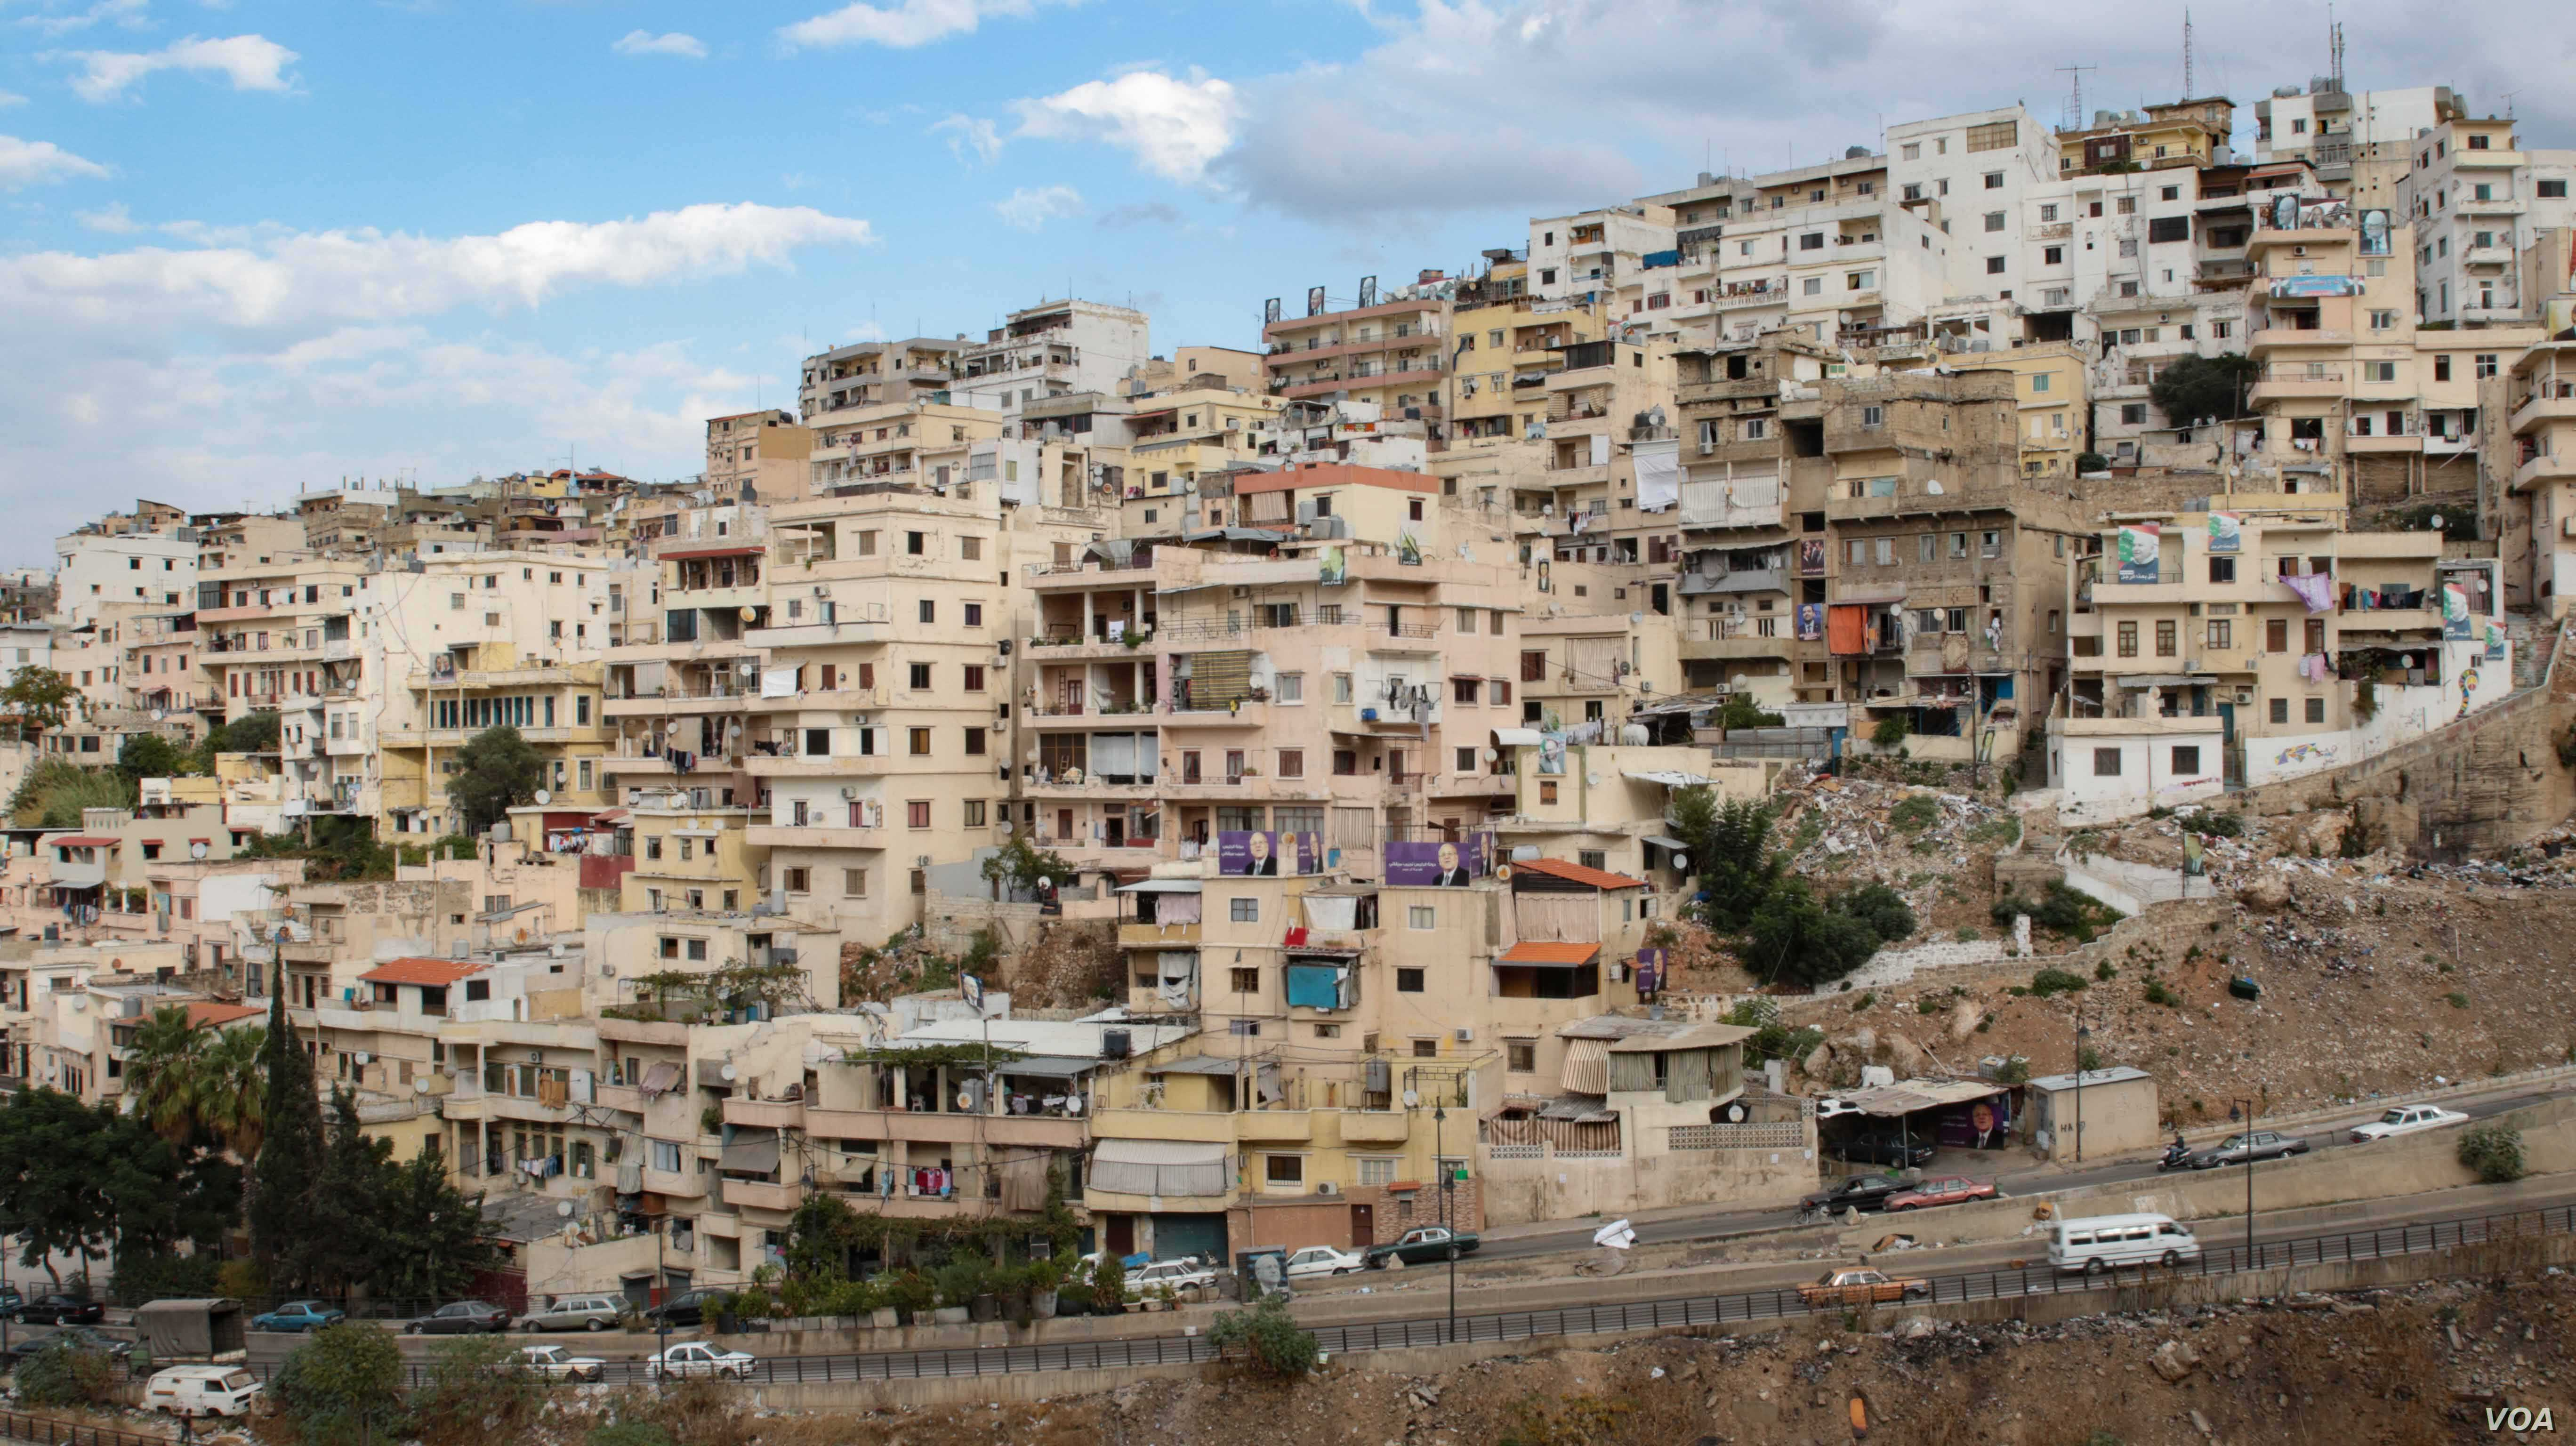 The neighborhood of Bab al-Tabbaneh in Tripoli, Lebanon, where Jibril Latach lives. Though relatively peaceful in the last couple of years, it has been the scene of intense sectarian conflict with neighboring Jabal Mohsen.